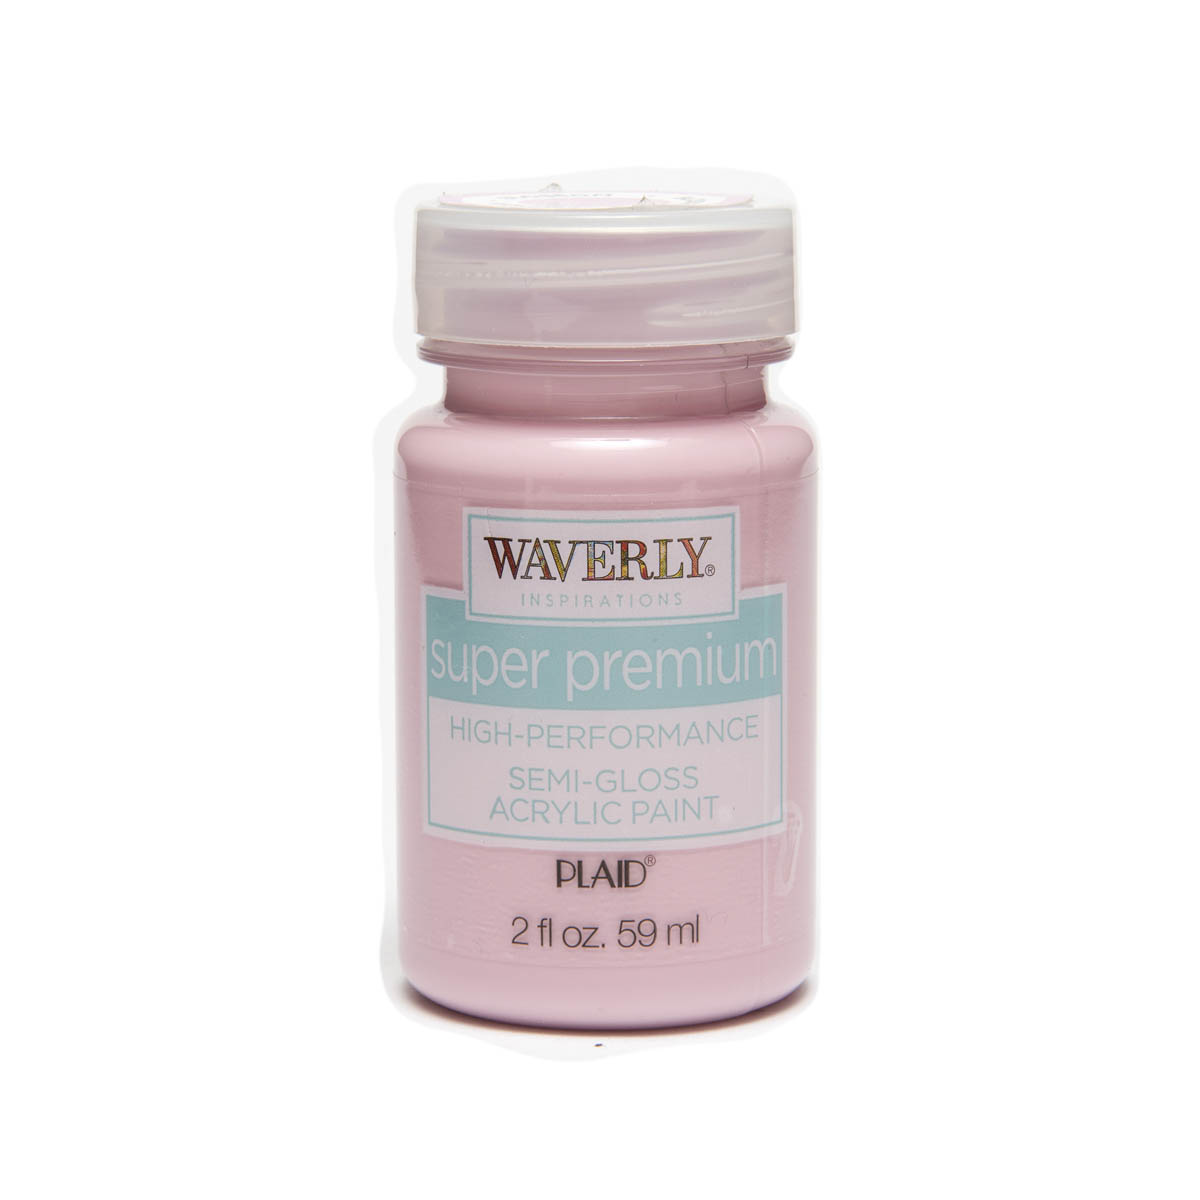 Waverly ® Inspirations Super Premium Semi-Gloss Acrylic Paint - Blossom, 2 oz.